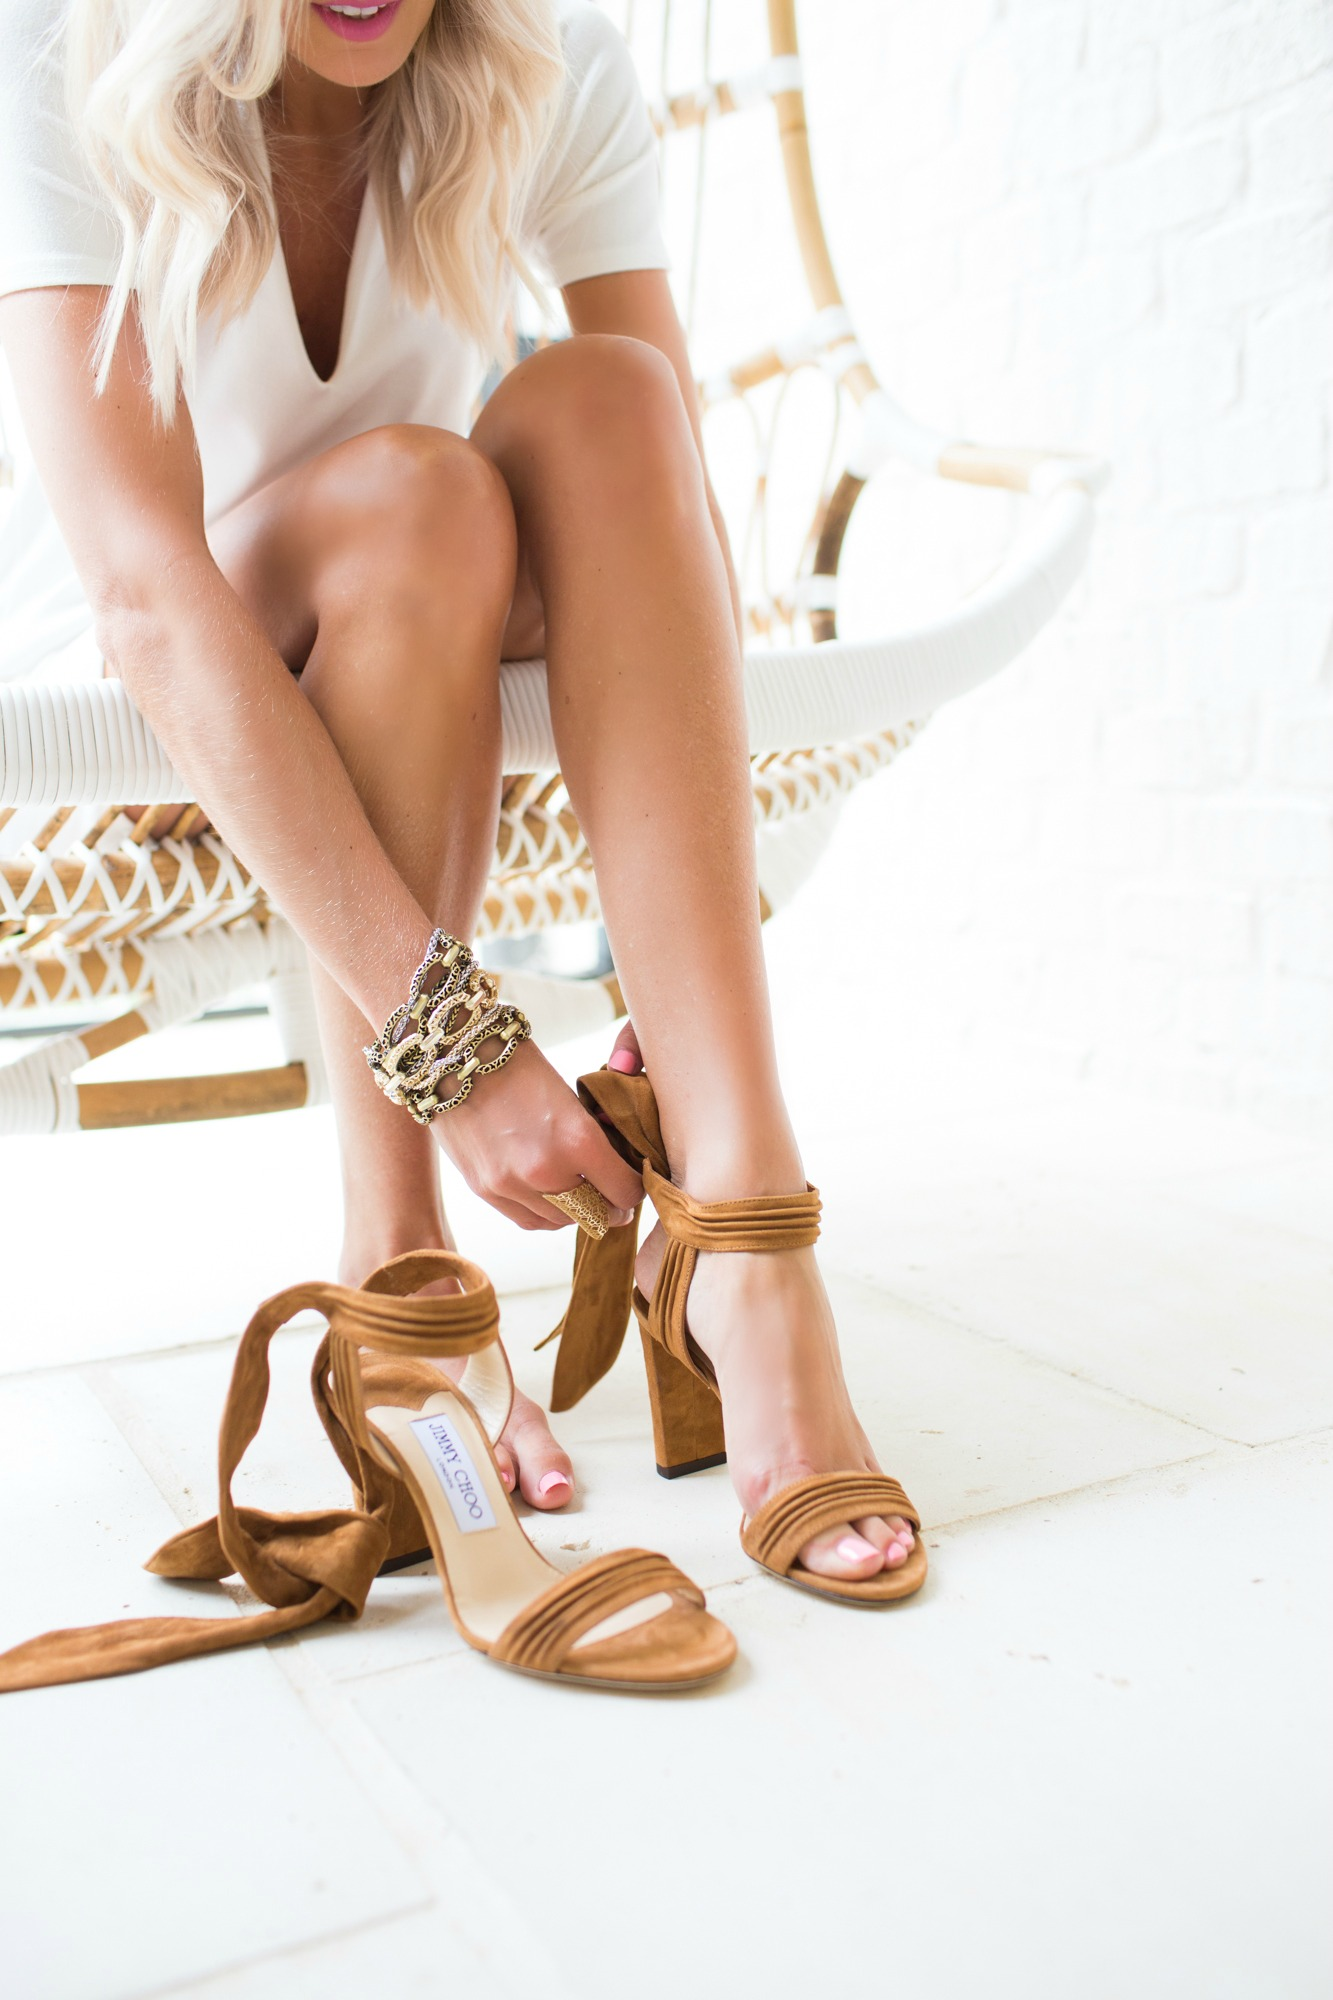 Jimmy Choo Pre-Fall Collection at Saks Fifth Avenue